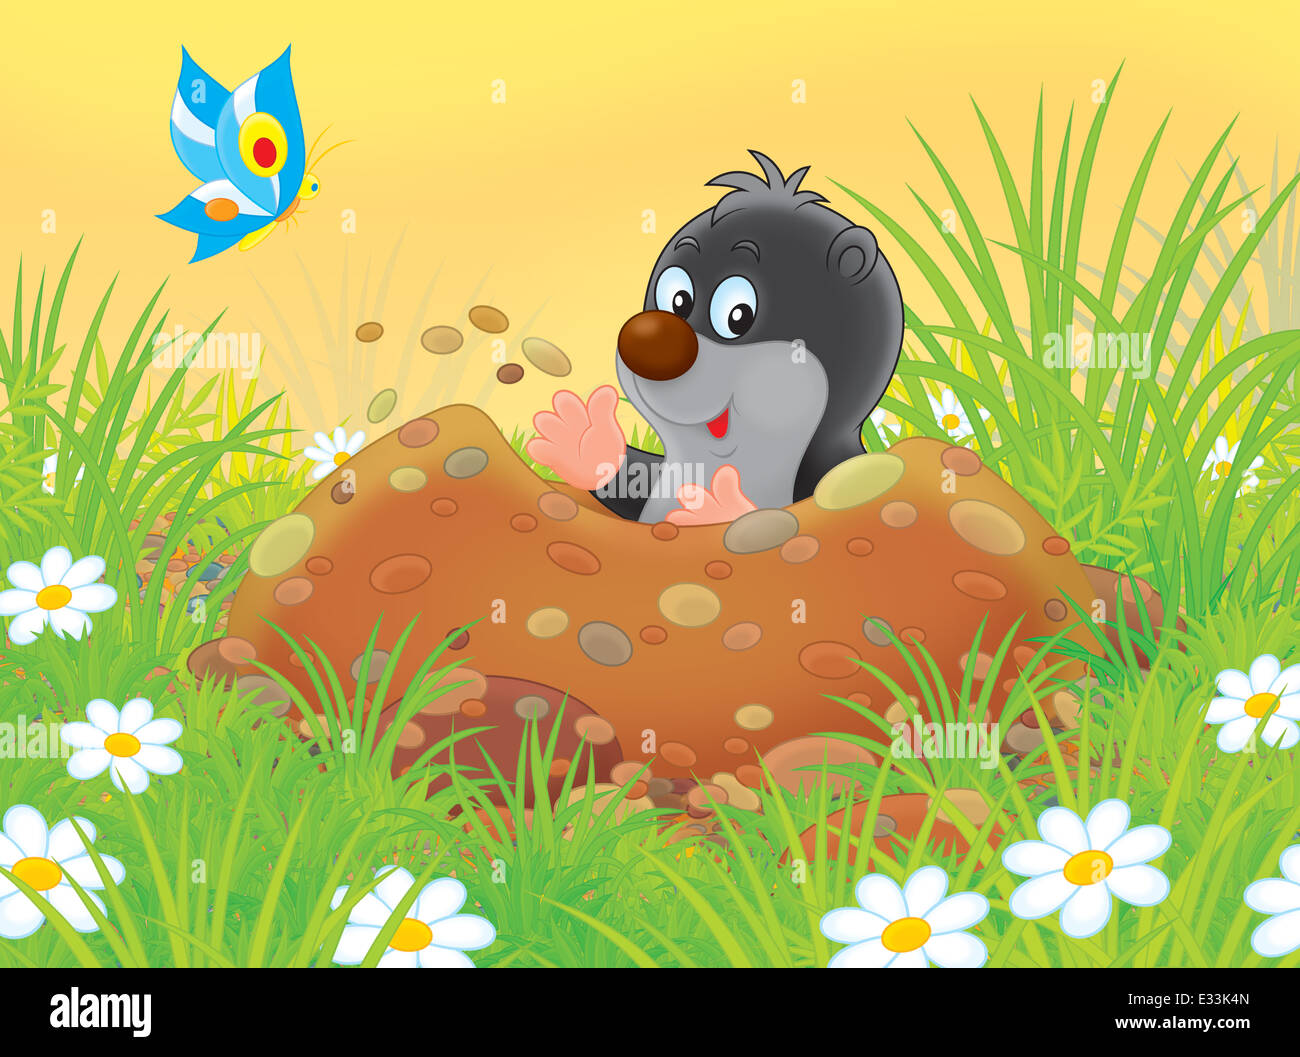 Talpa foto & immagine stock: 70766325 alamy